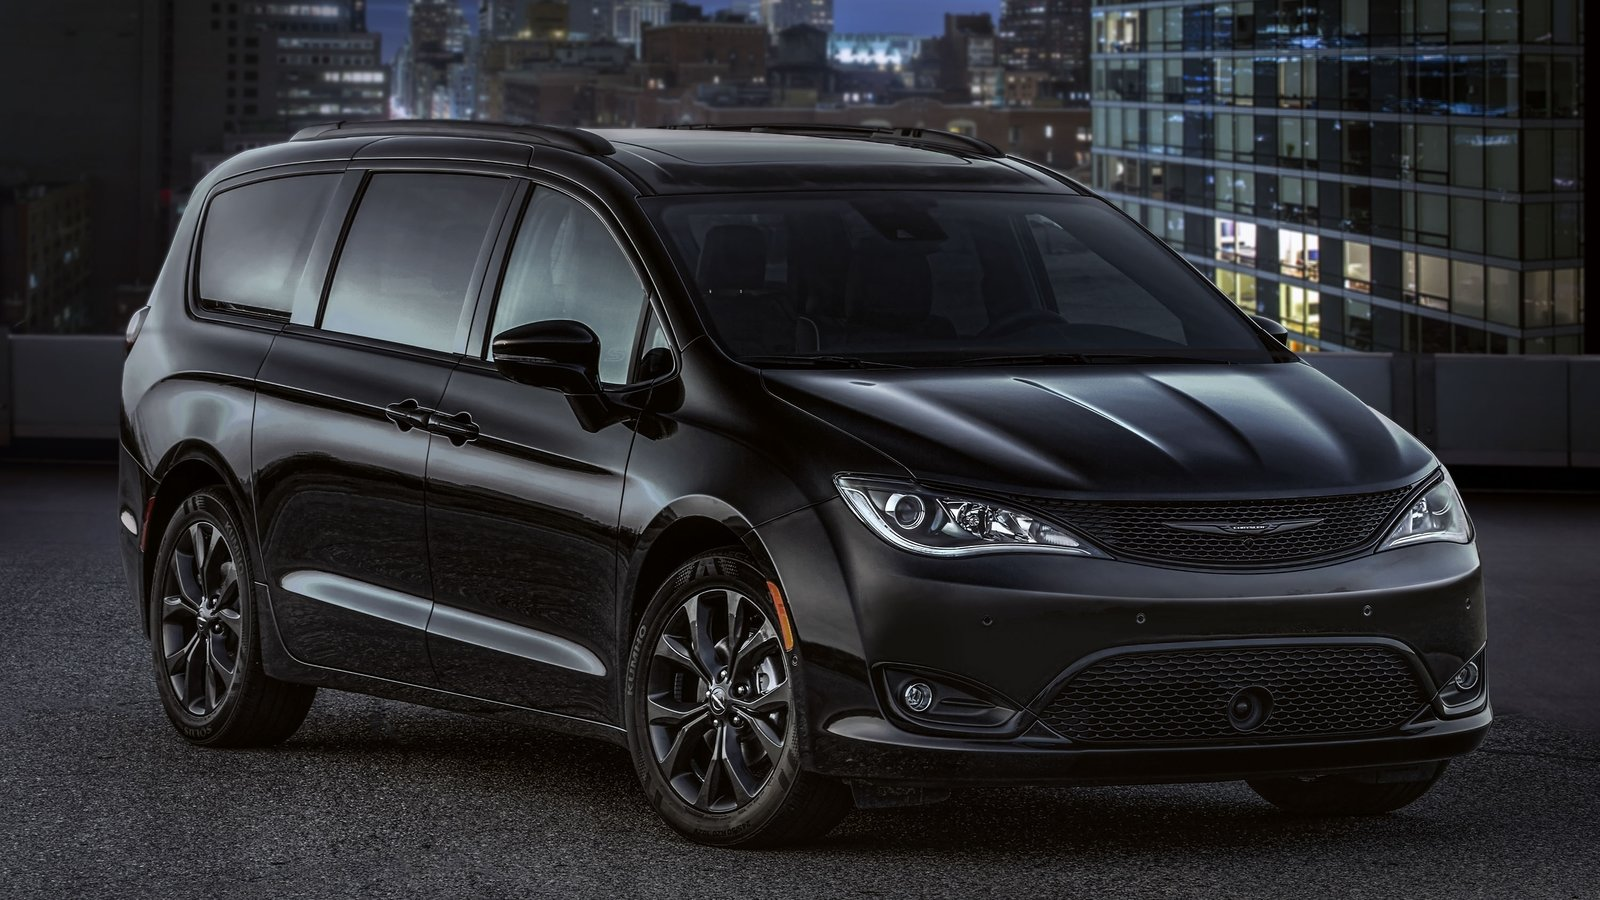 2018 chrysler pacifica s appearance package pictures. Black Bedroom Furniture Sets. Home Design Ideas